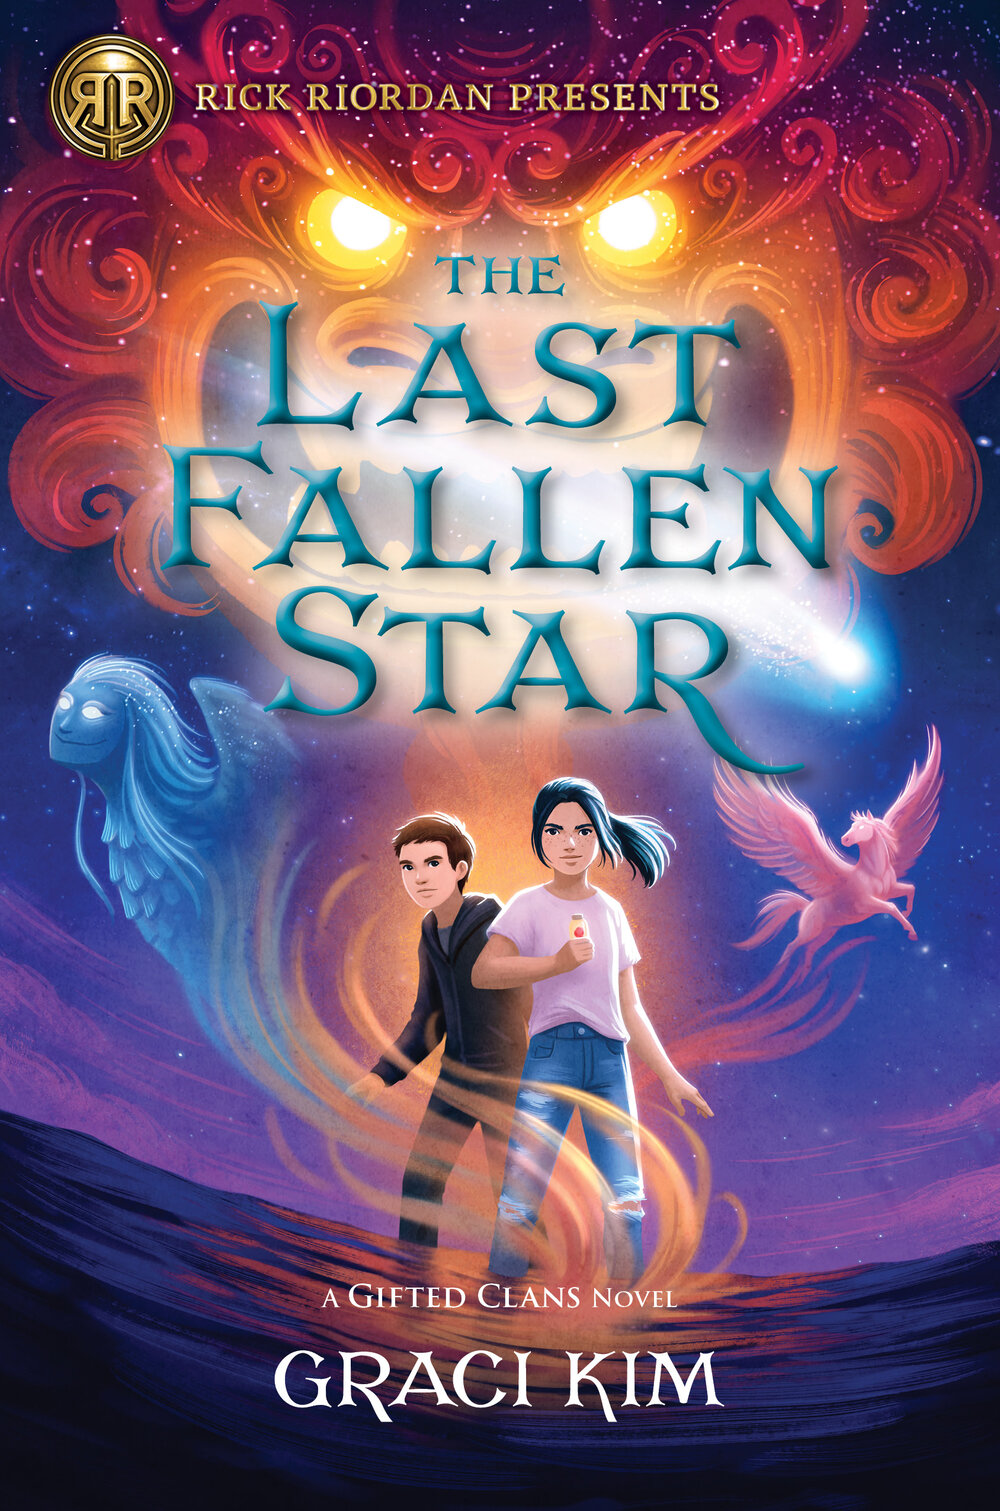 The cover for The Last Fallen Star. A Korean girl stands determinedly in the center, while the silhouette of mythical Haetae is seen in the evening sky.